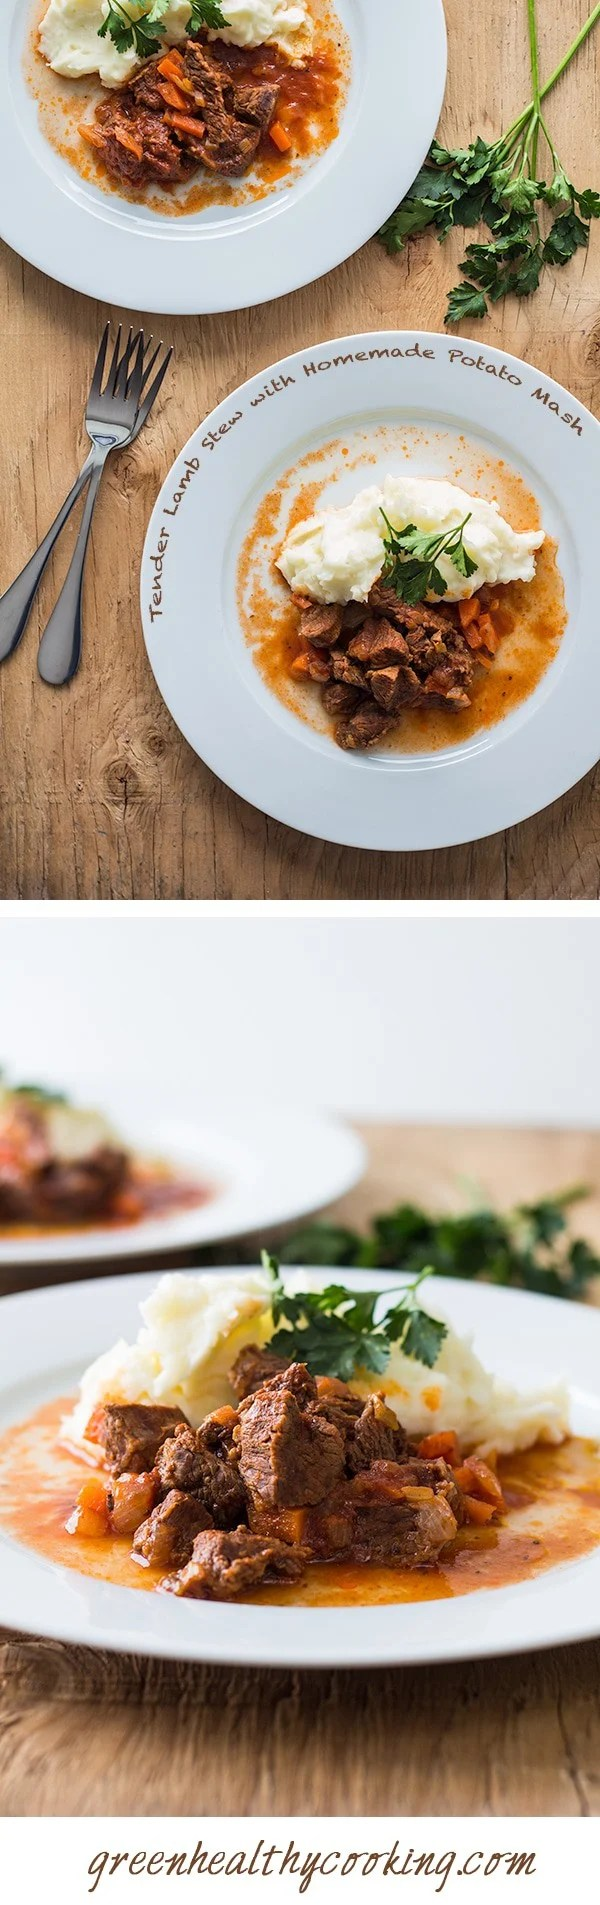 Collage of Tender Lamb Stew with Homemade Potato Mash images with text overlay for Pinterest.